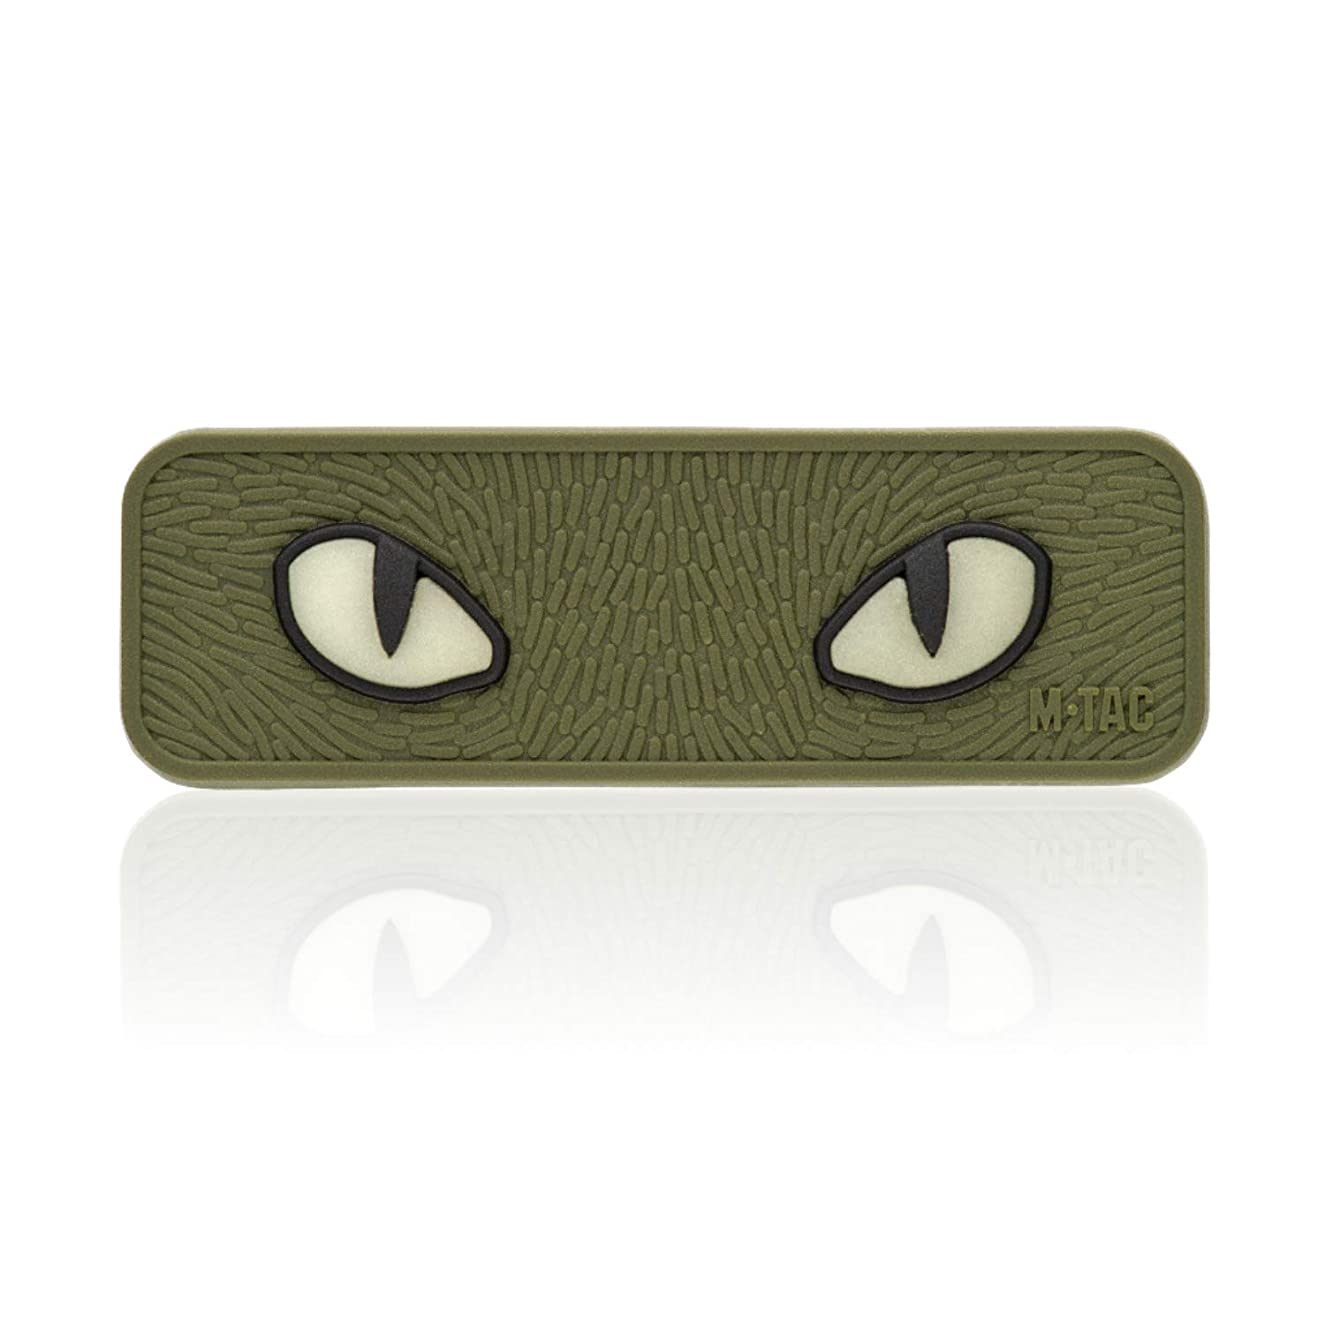 M-Tac Cat Eyes PVC Morale Patch - Tactical Patch - Hook Fasteners